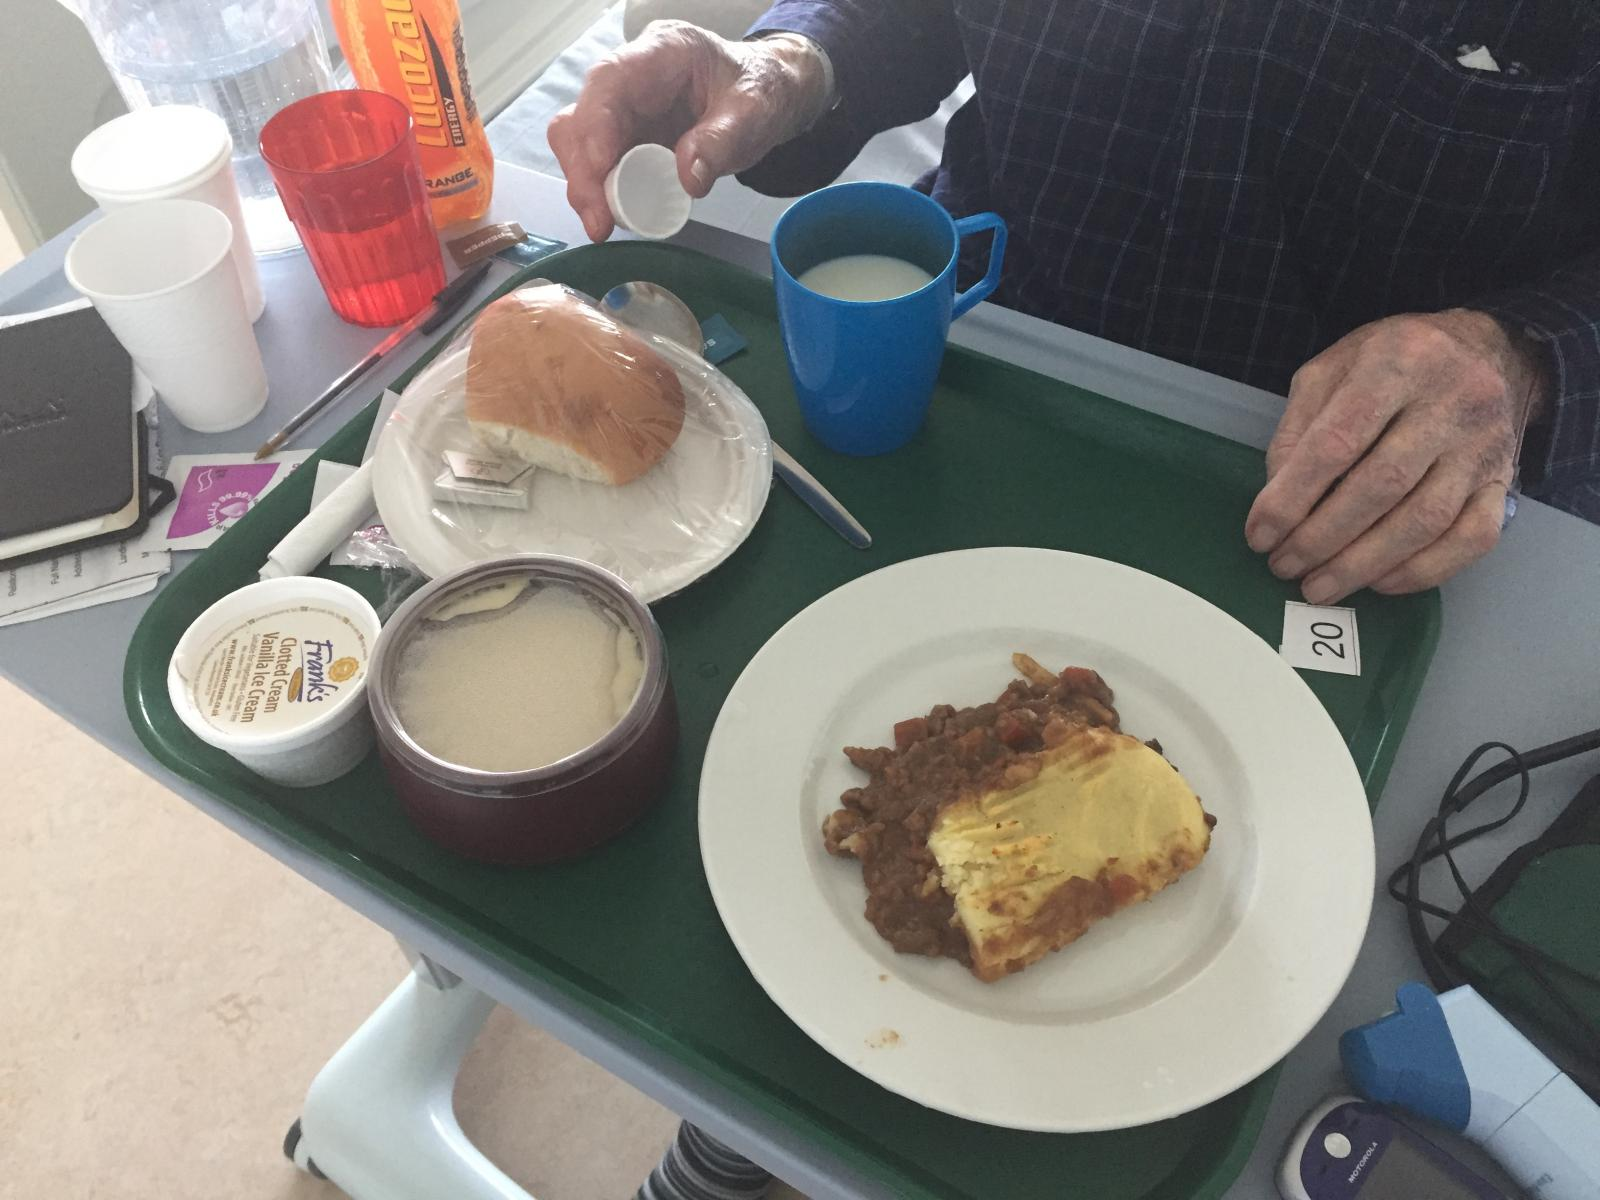 Food served to a hospital patient. Credit: Kath Dalmeny